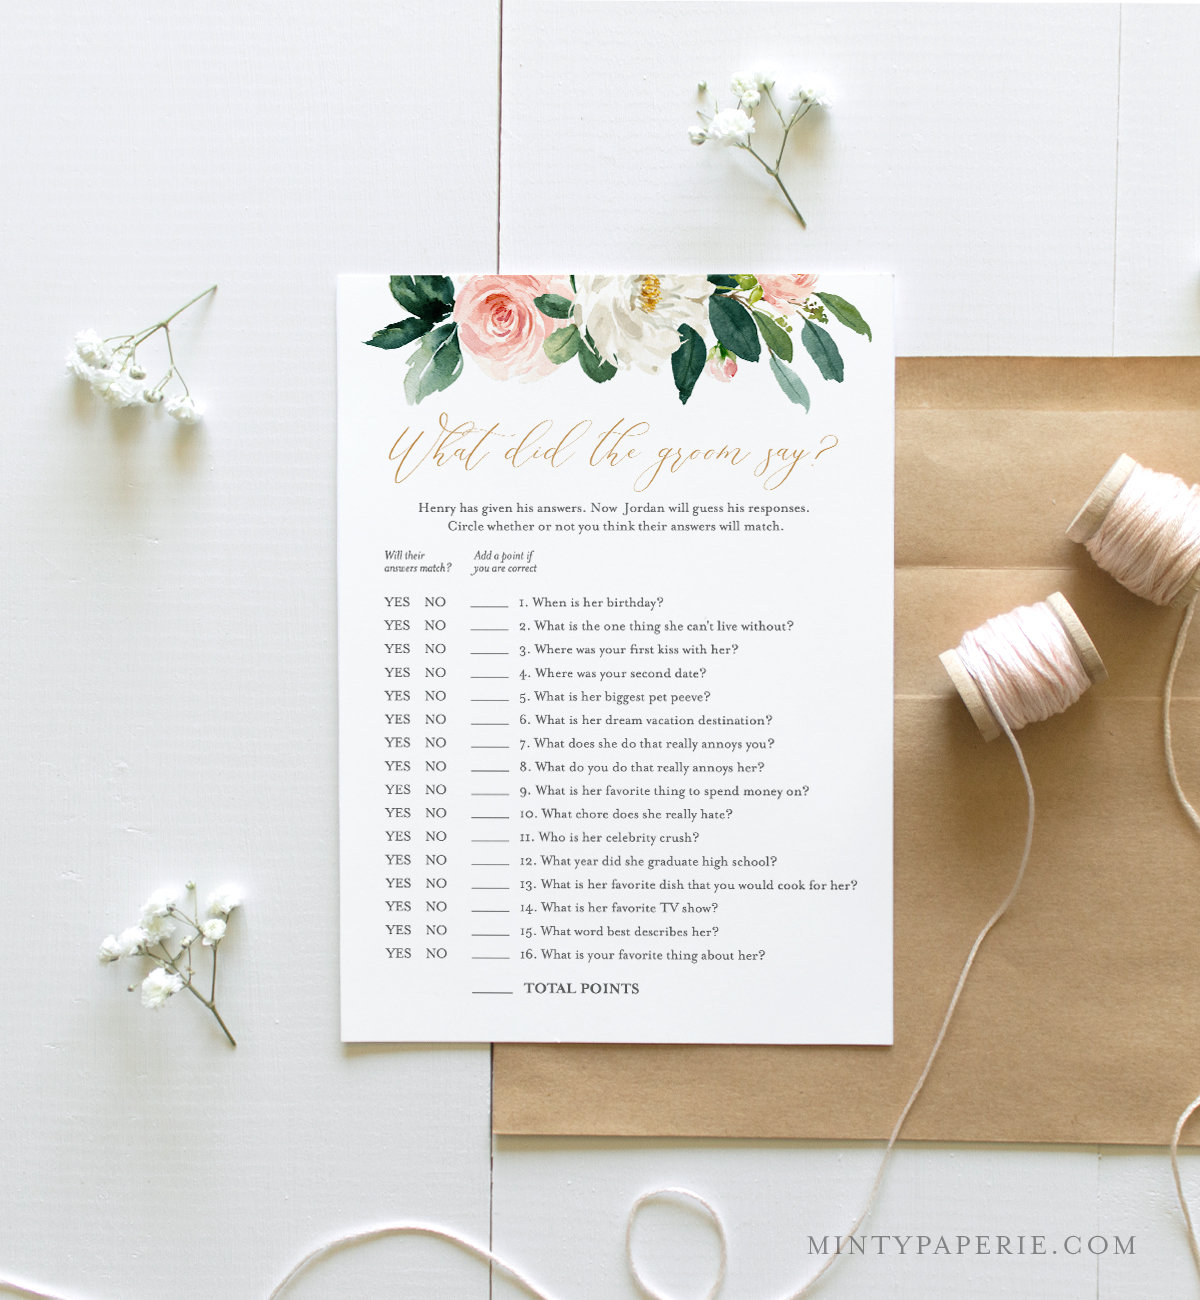 what did the groom say bridal shower game instant download printable wedding game editable template personalize questions 043 111bg